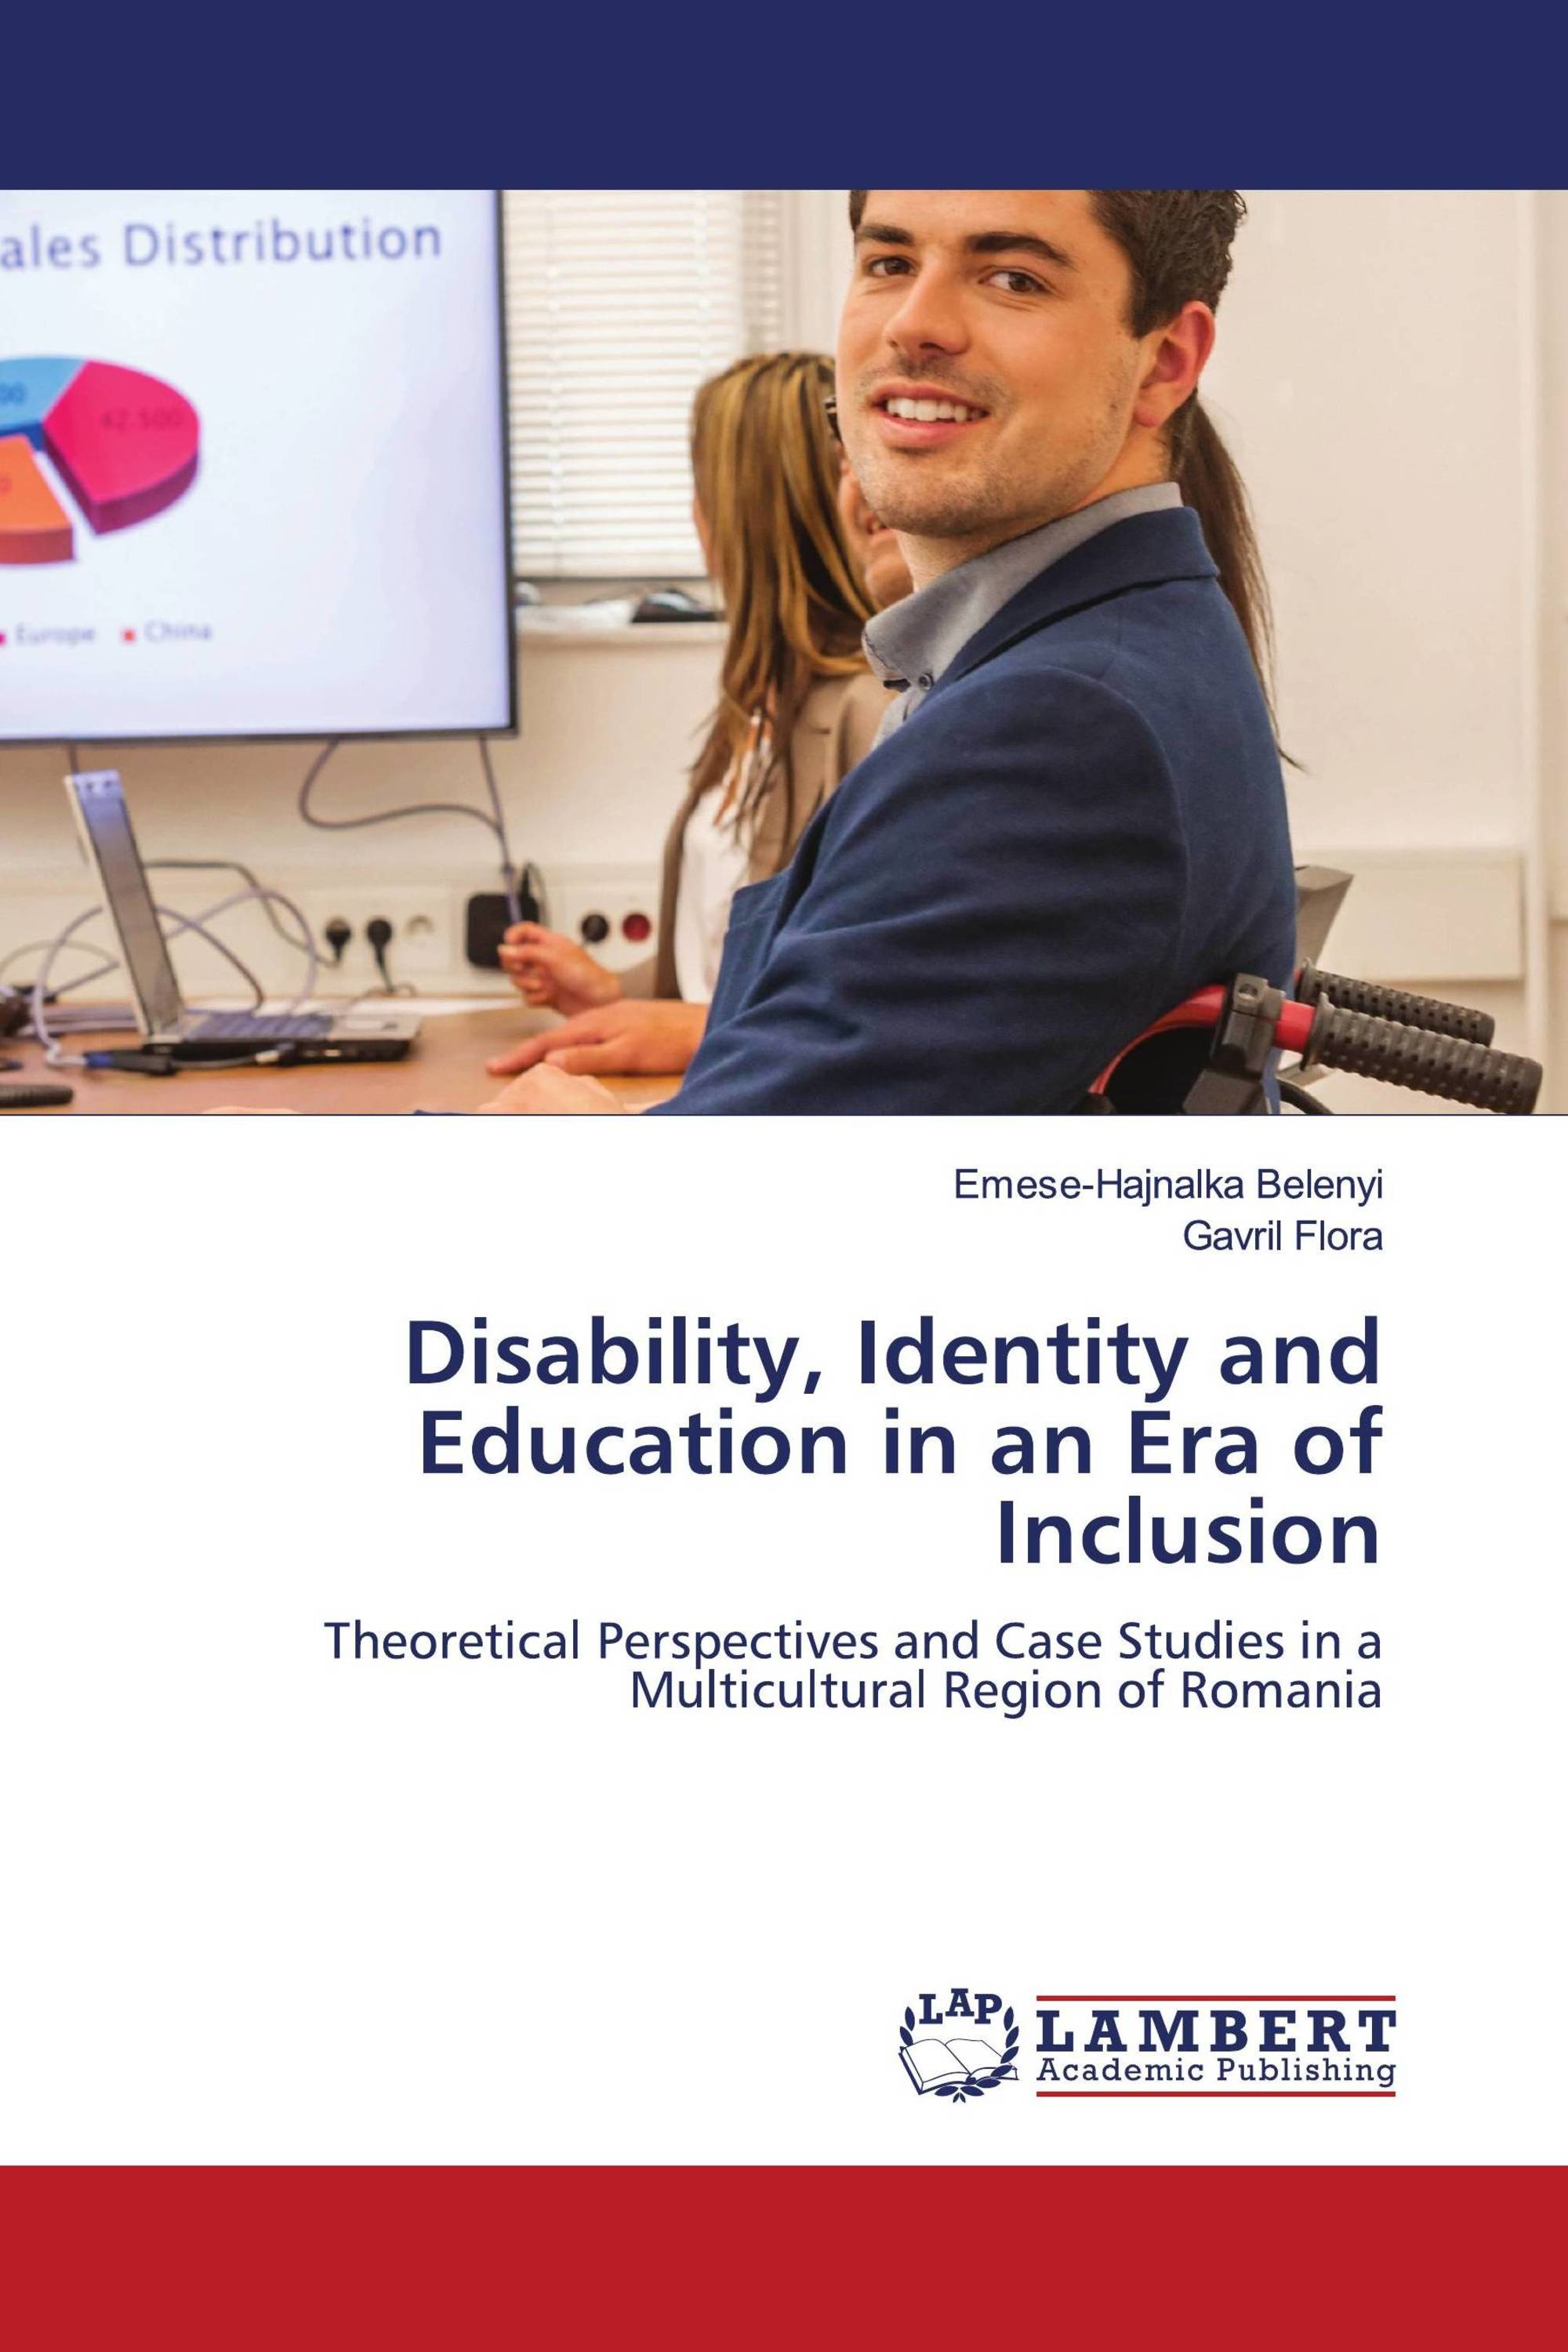 Disability, Identity and Education in an Era of Inclusion